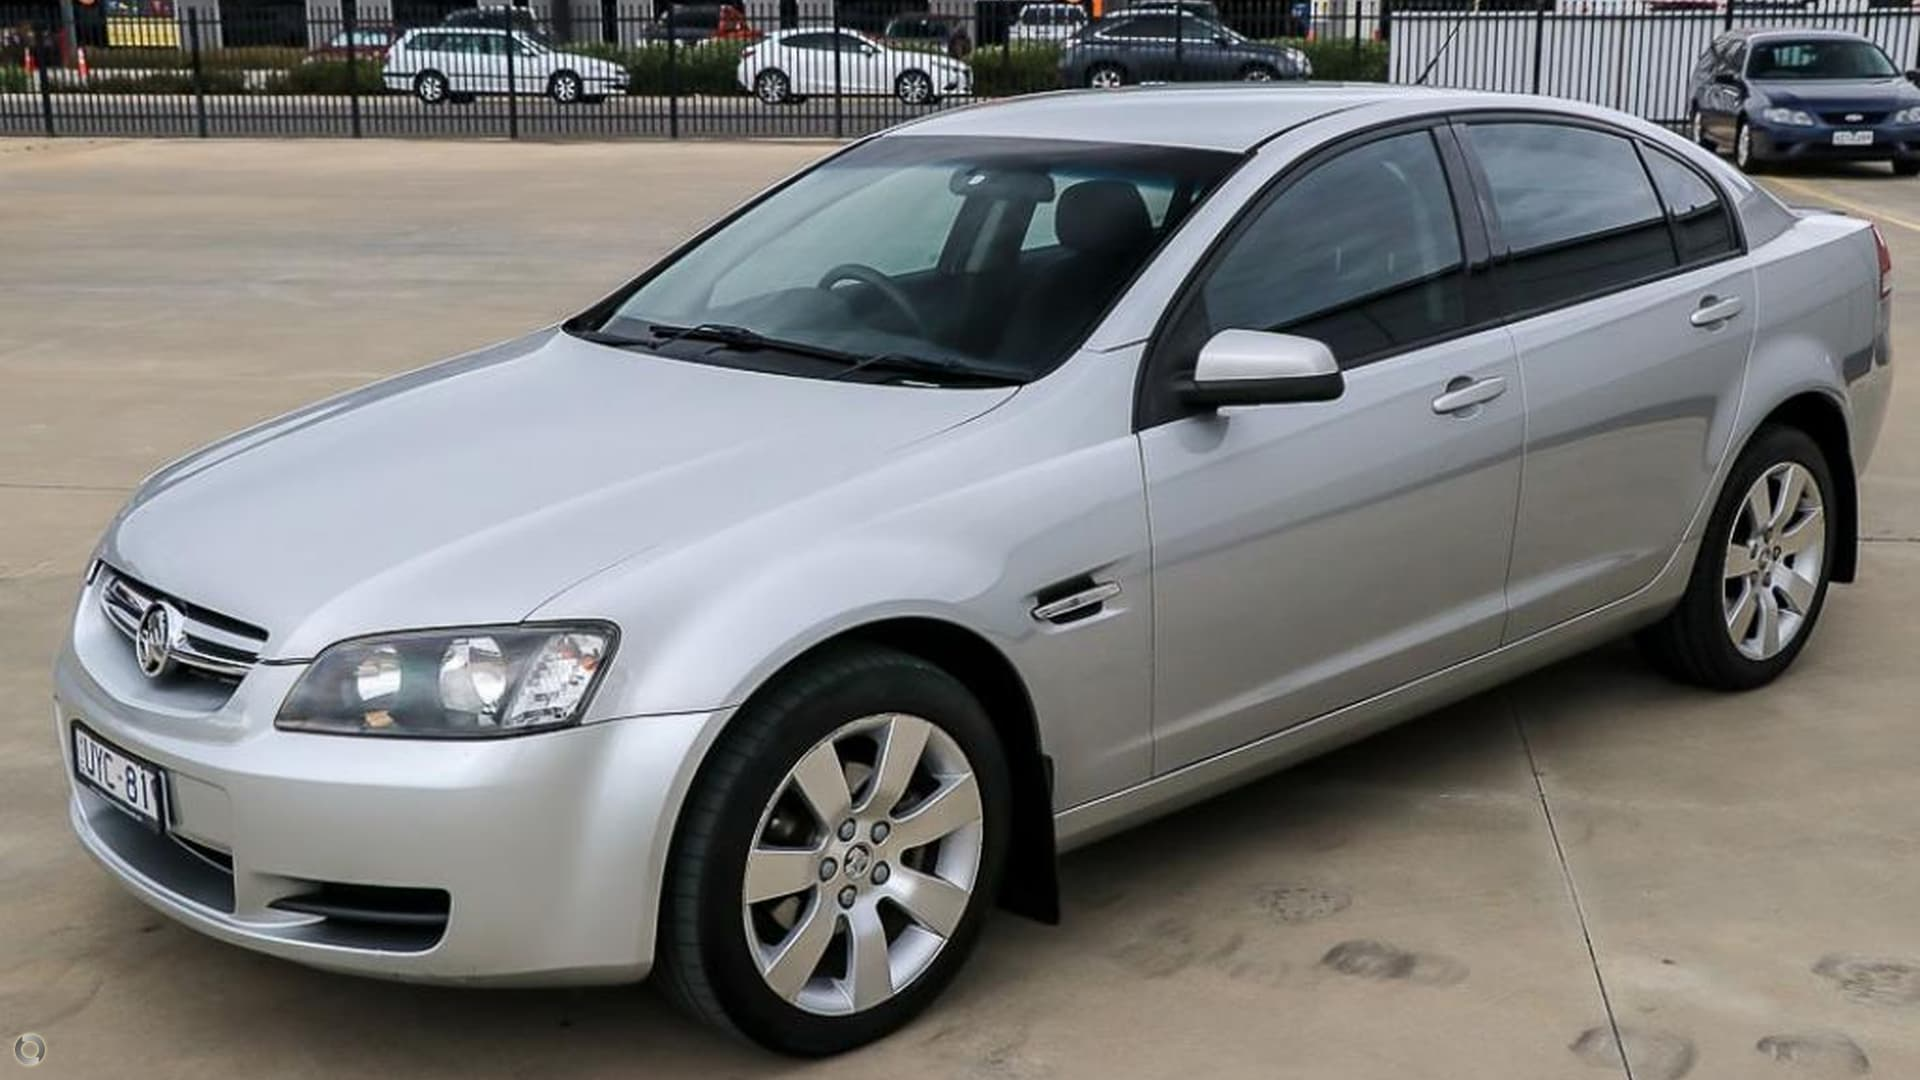 2007 Holden Commodore VE